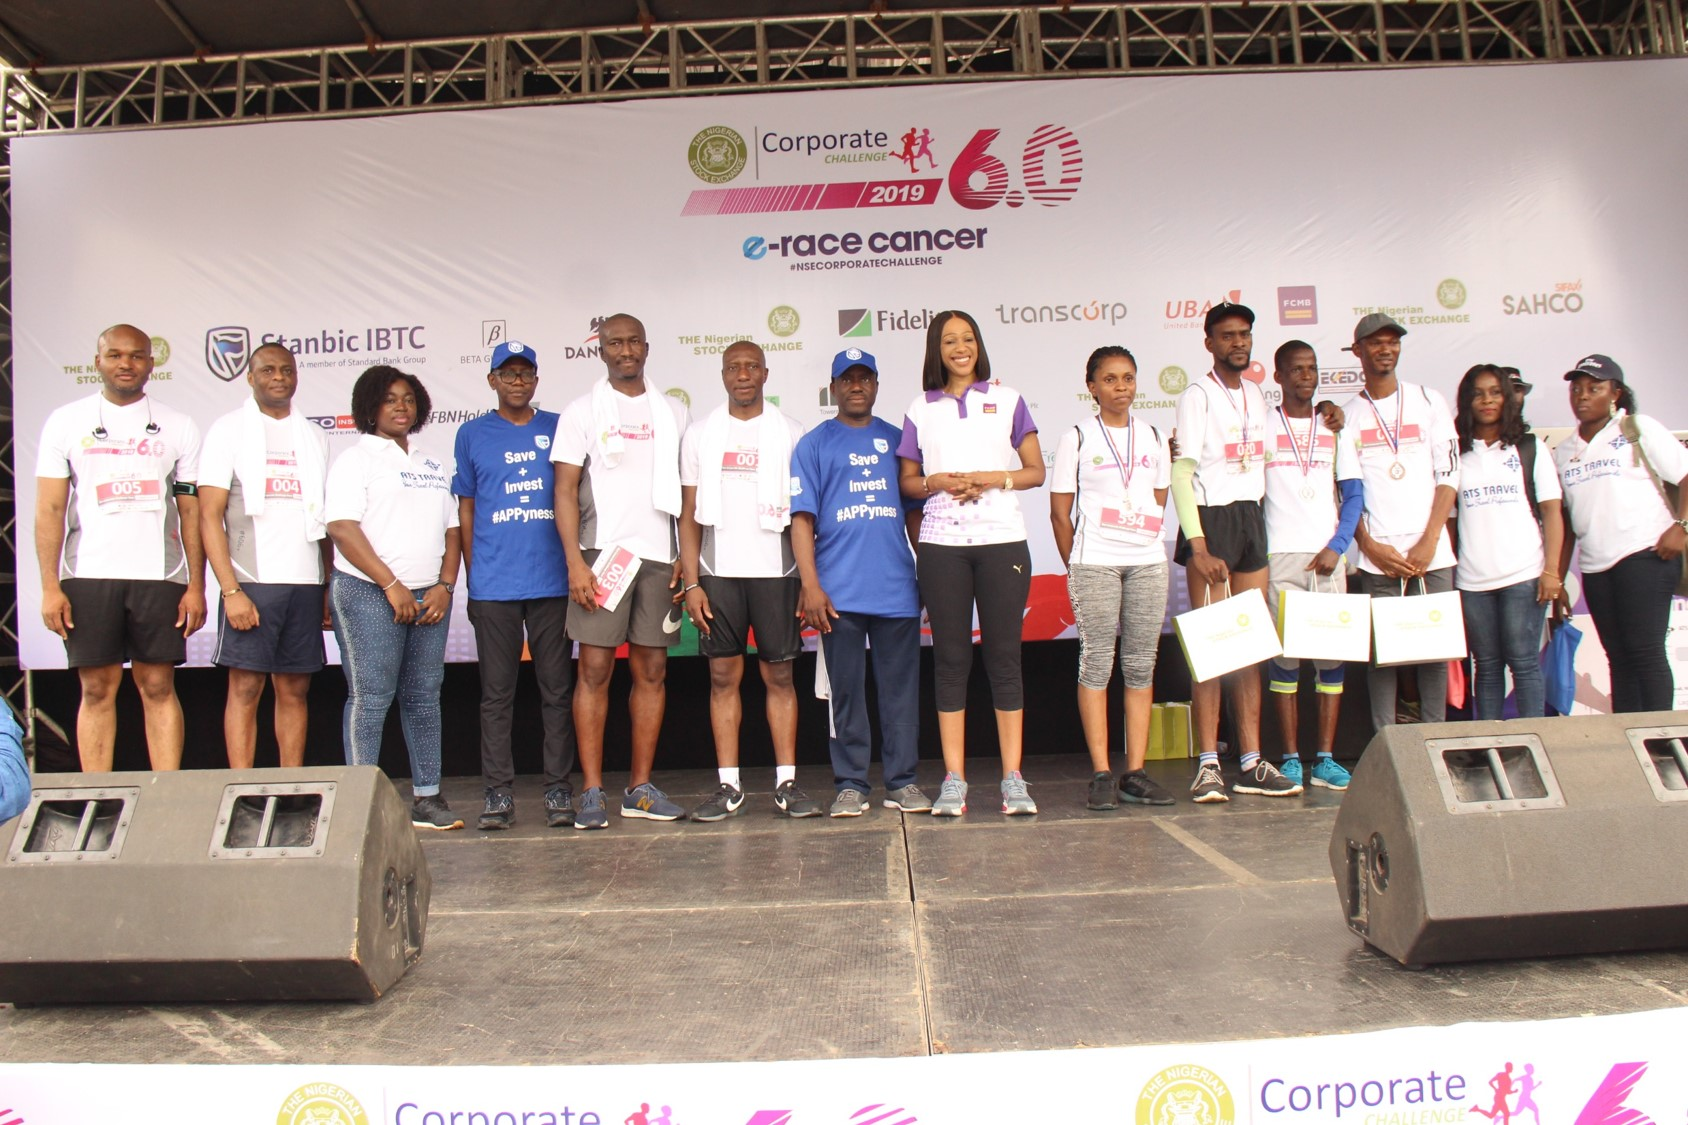 """Hundreds of Runners Braved the Rain to """"eRace Cancer"""" at NSE Corporate Challenge (Photos)"""